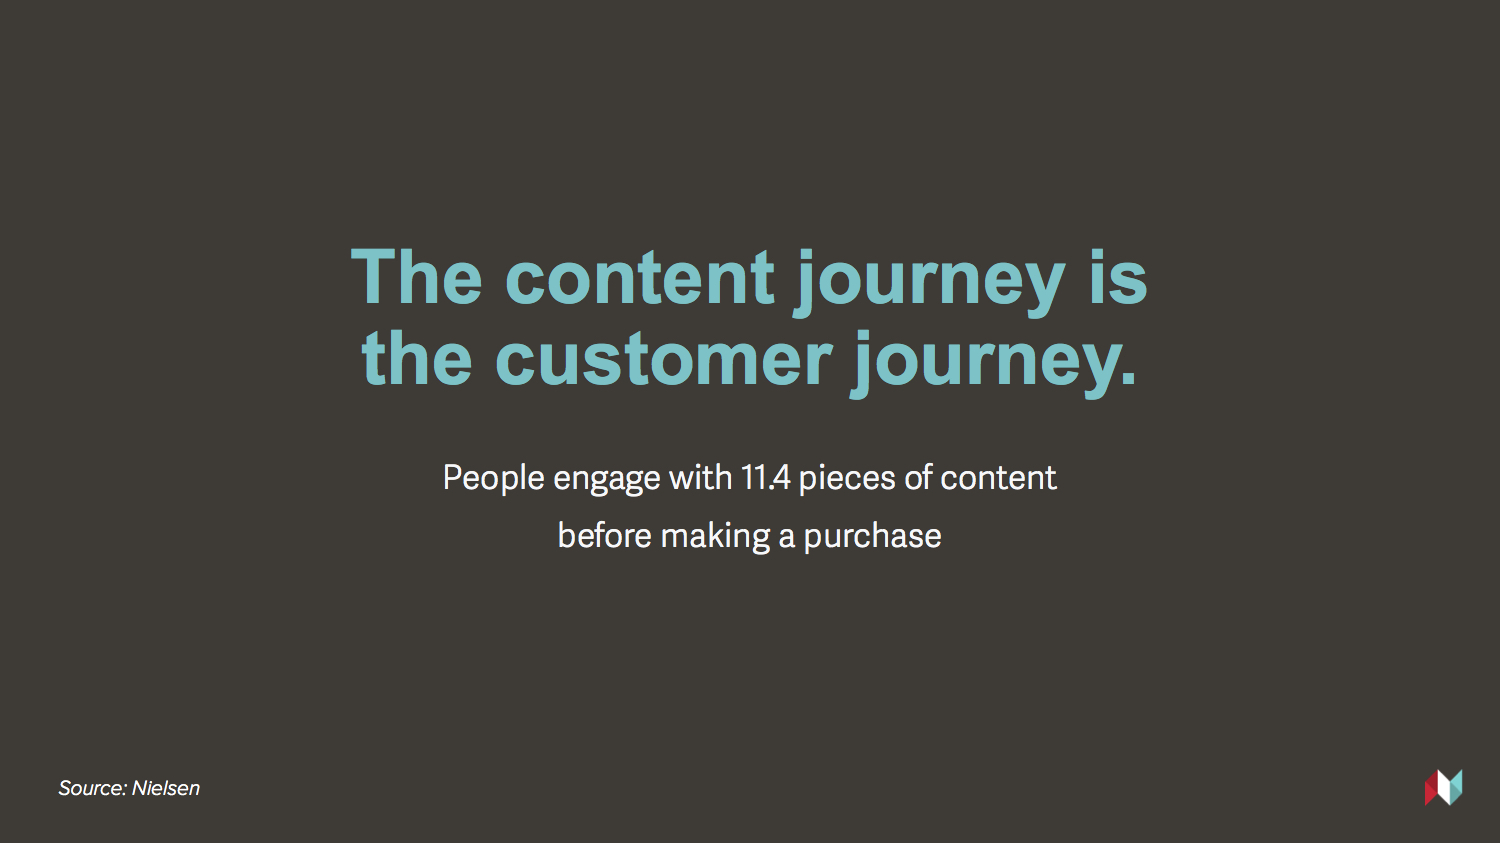 shafqat_islam_content_journey_is_customer_journey.jpg